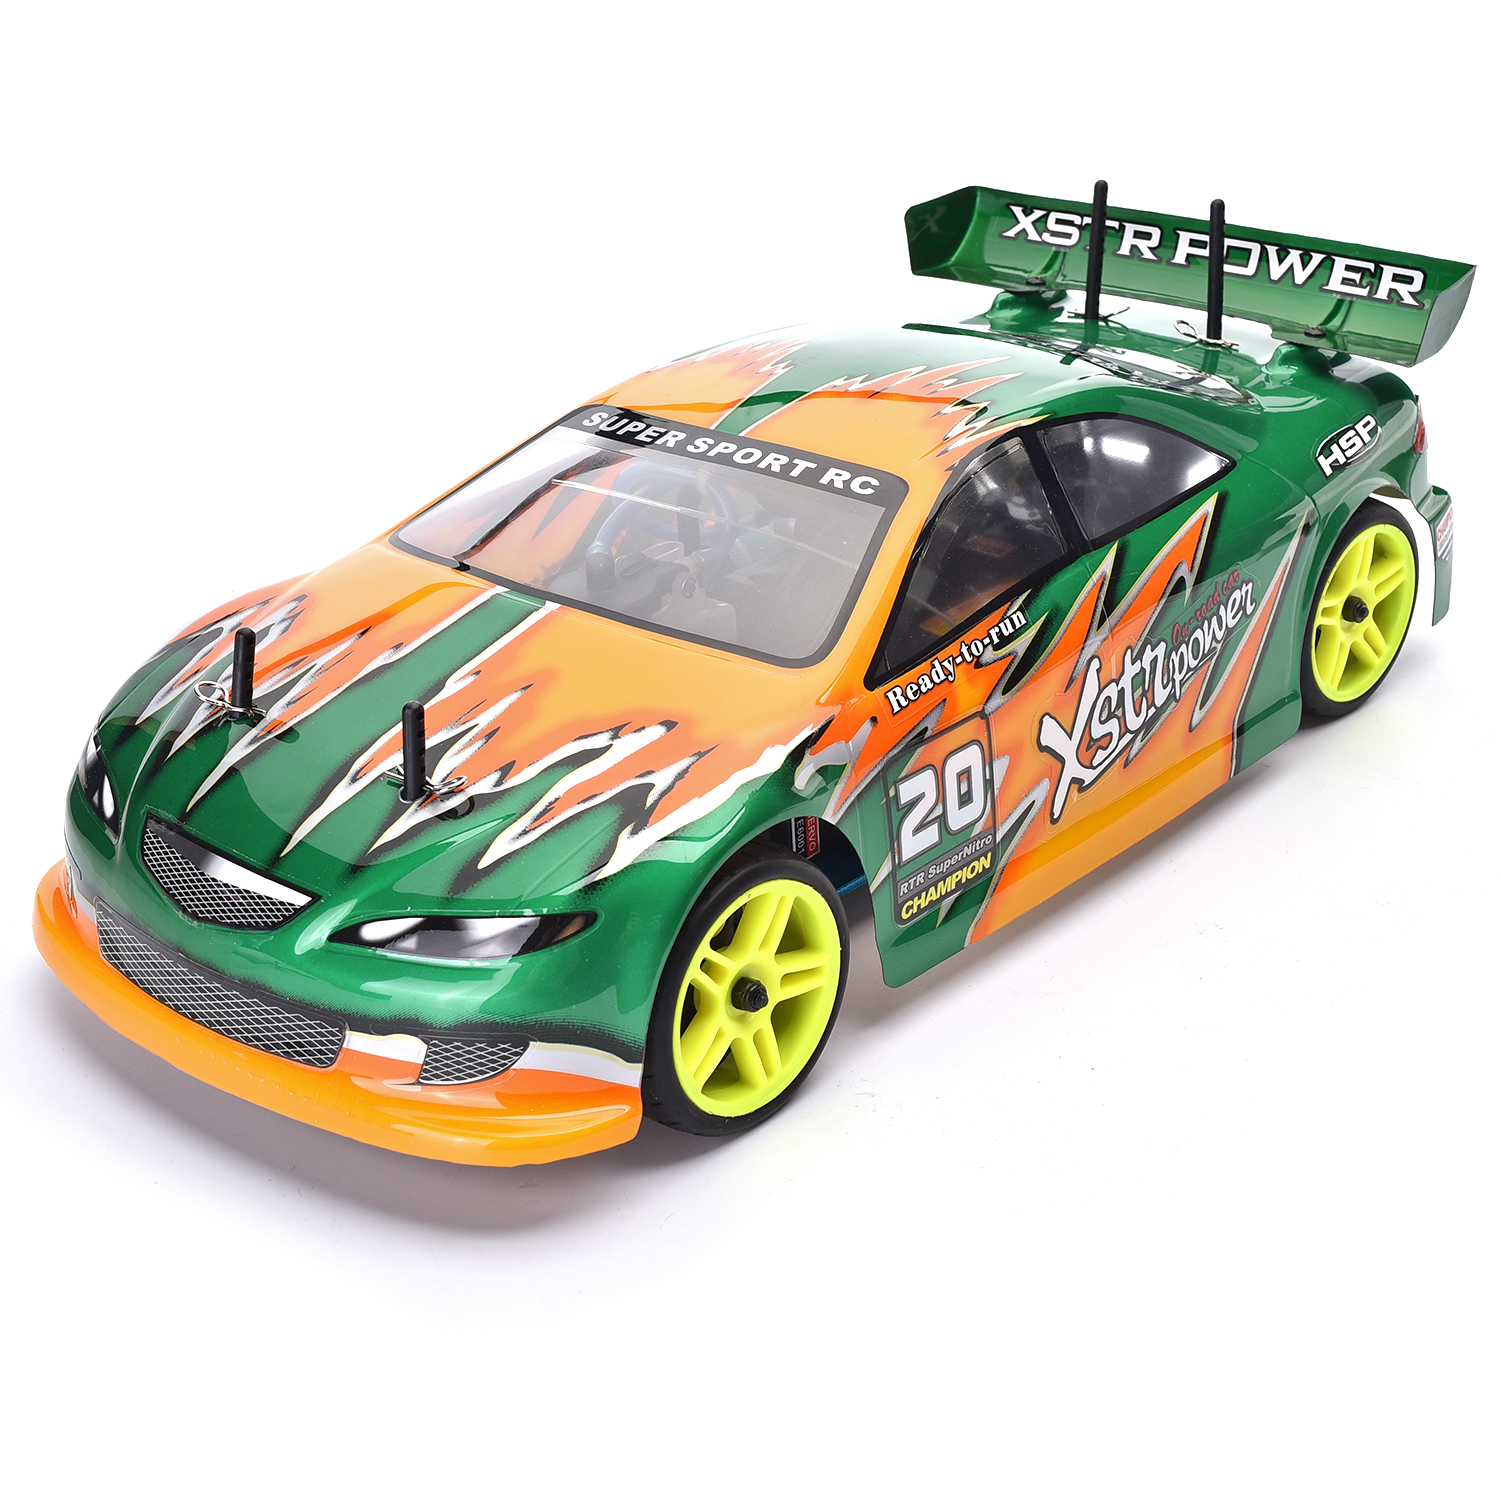 HSP Drift Car 1/10 Scale Models 4wd Nitro Gas Power On